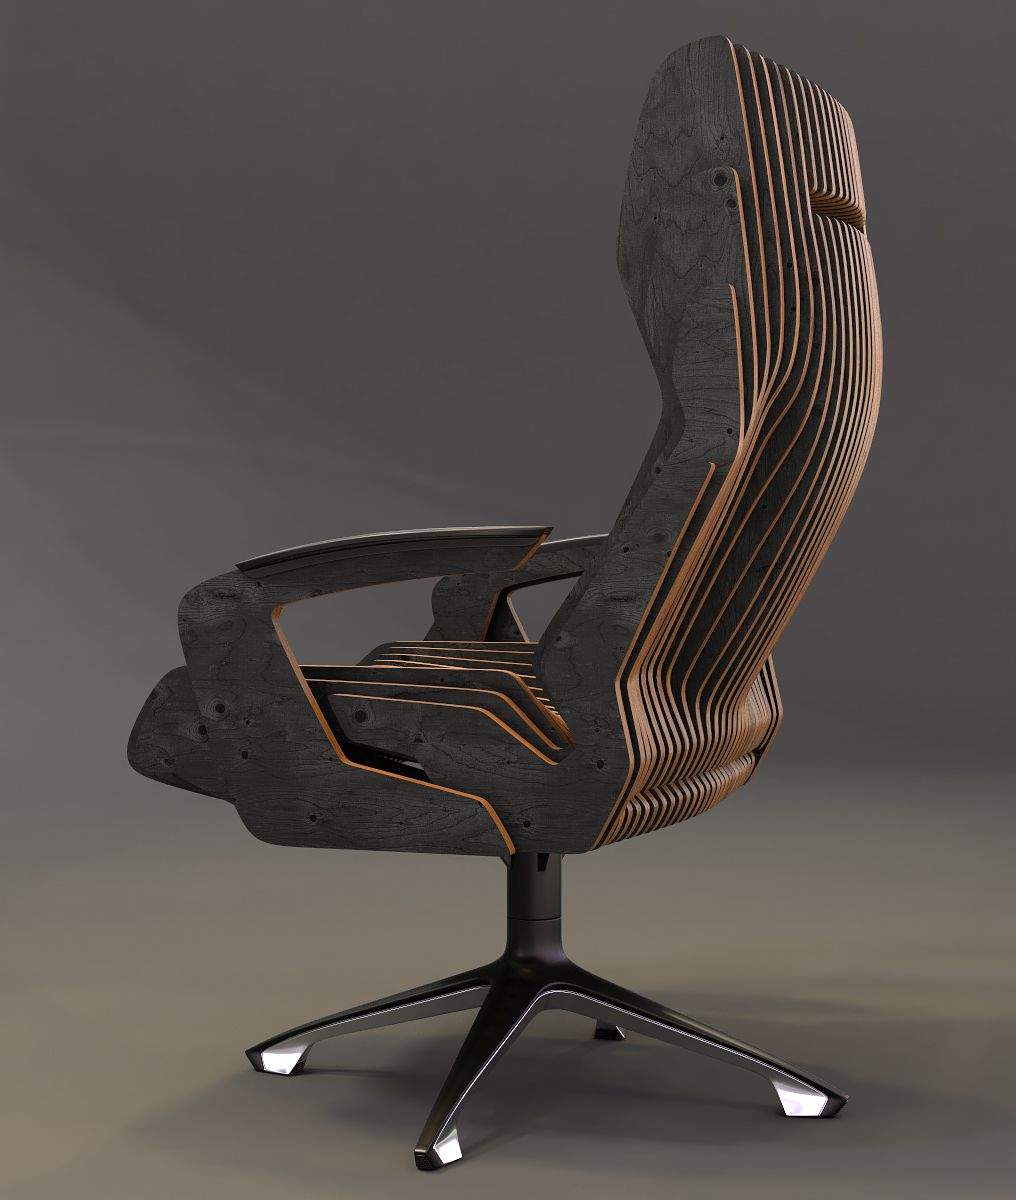 Concept Of A Parametric Chair | General Tips & Ideas | Pinterest With Regard To Revolve Swivel Accent Chairs (Image 4 of 23)